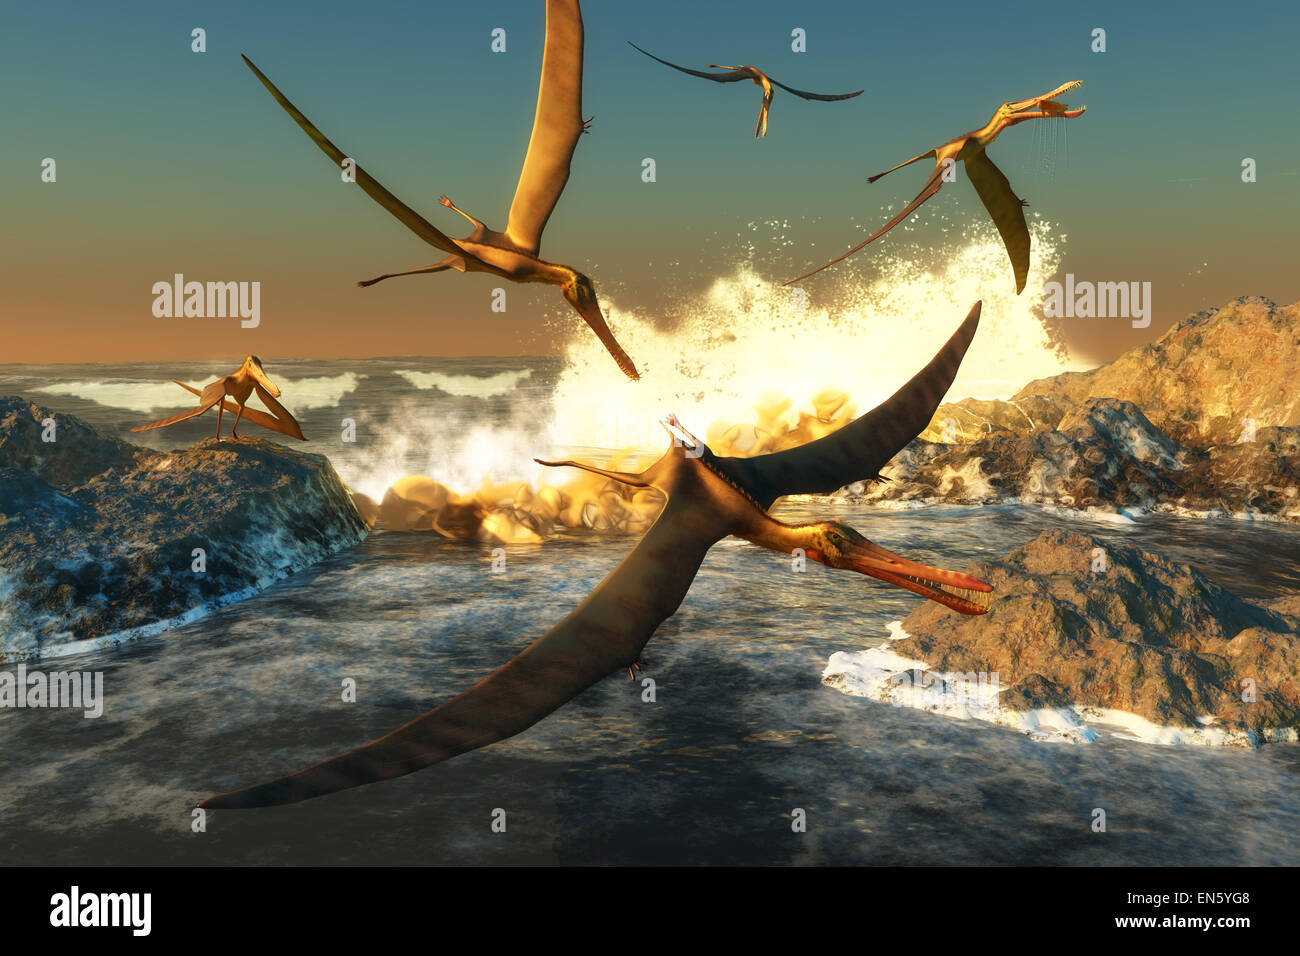 A flock of Anhanguera flying dinosaur reptiles catch fish off a rocky coast in prehistoric times. - Stock Image